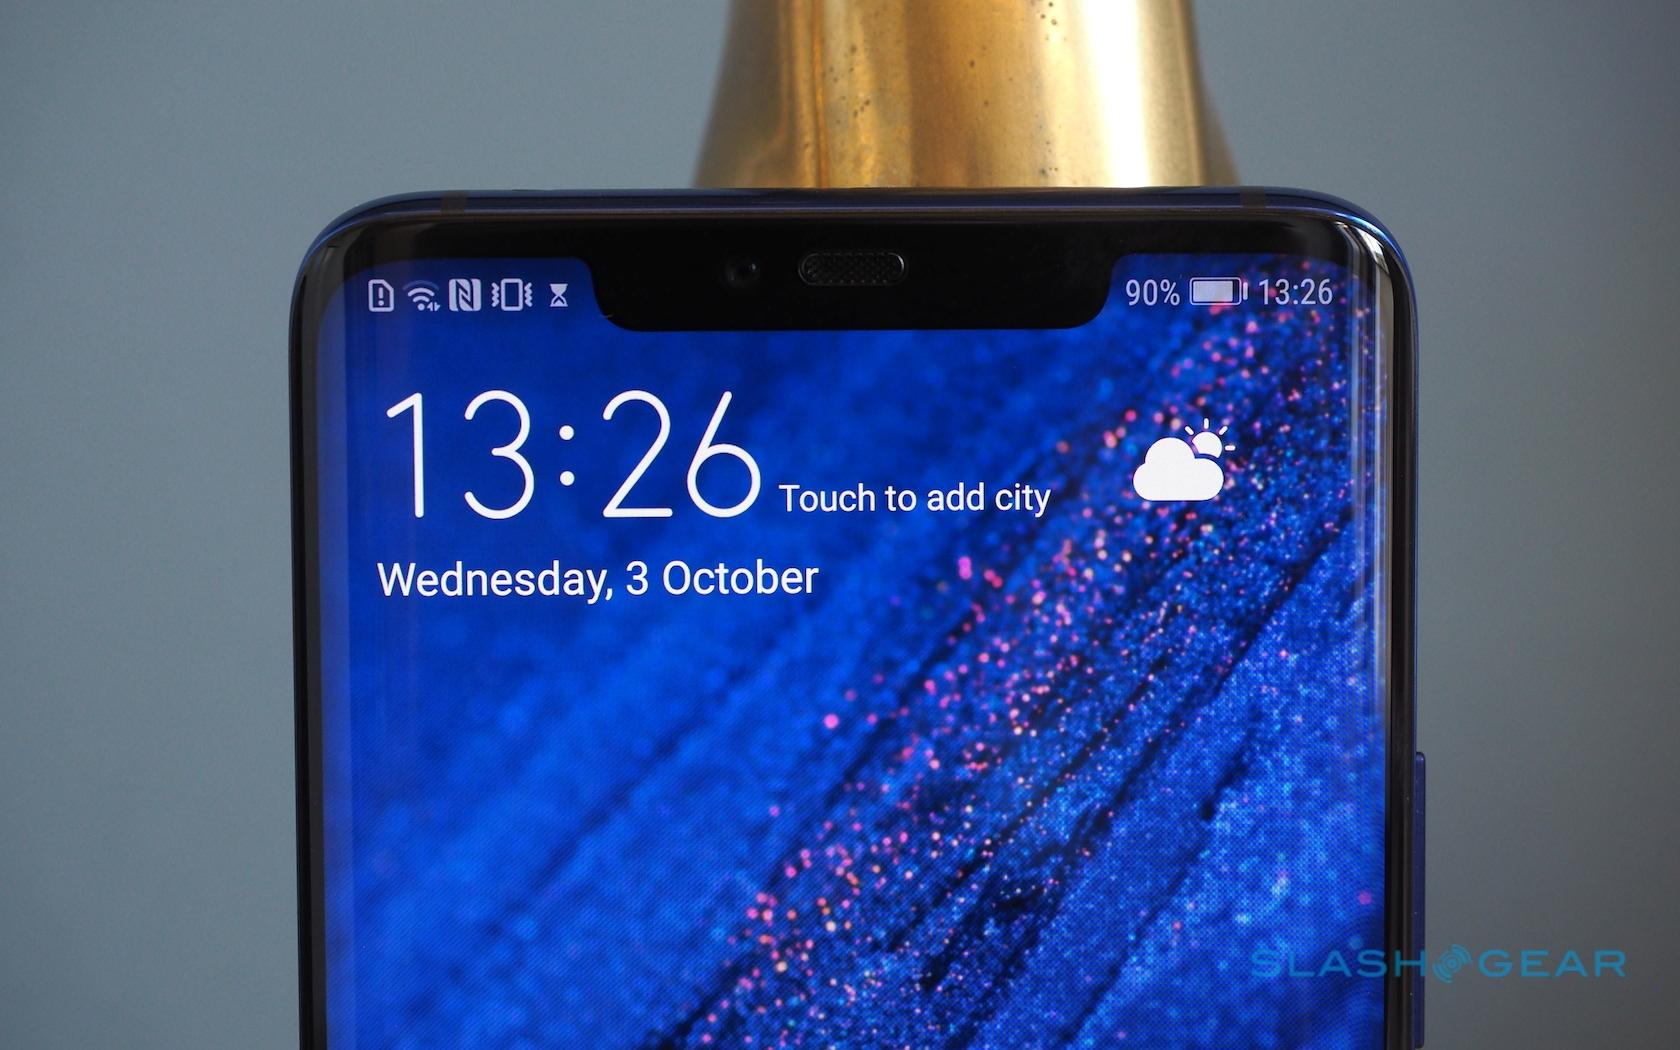 Huawei Mate 20 Pro hands-on: Gunning for iPhone XS - SlashGear